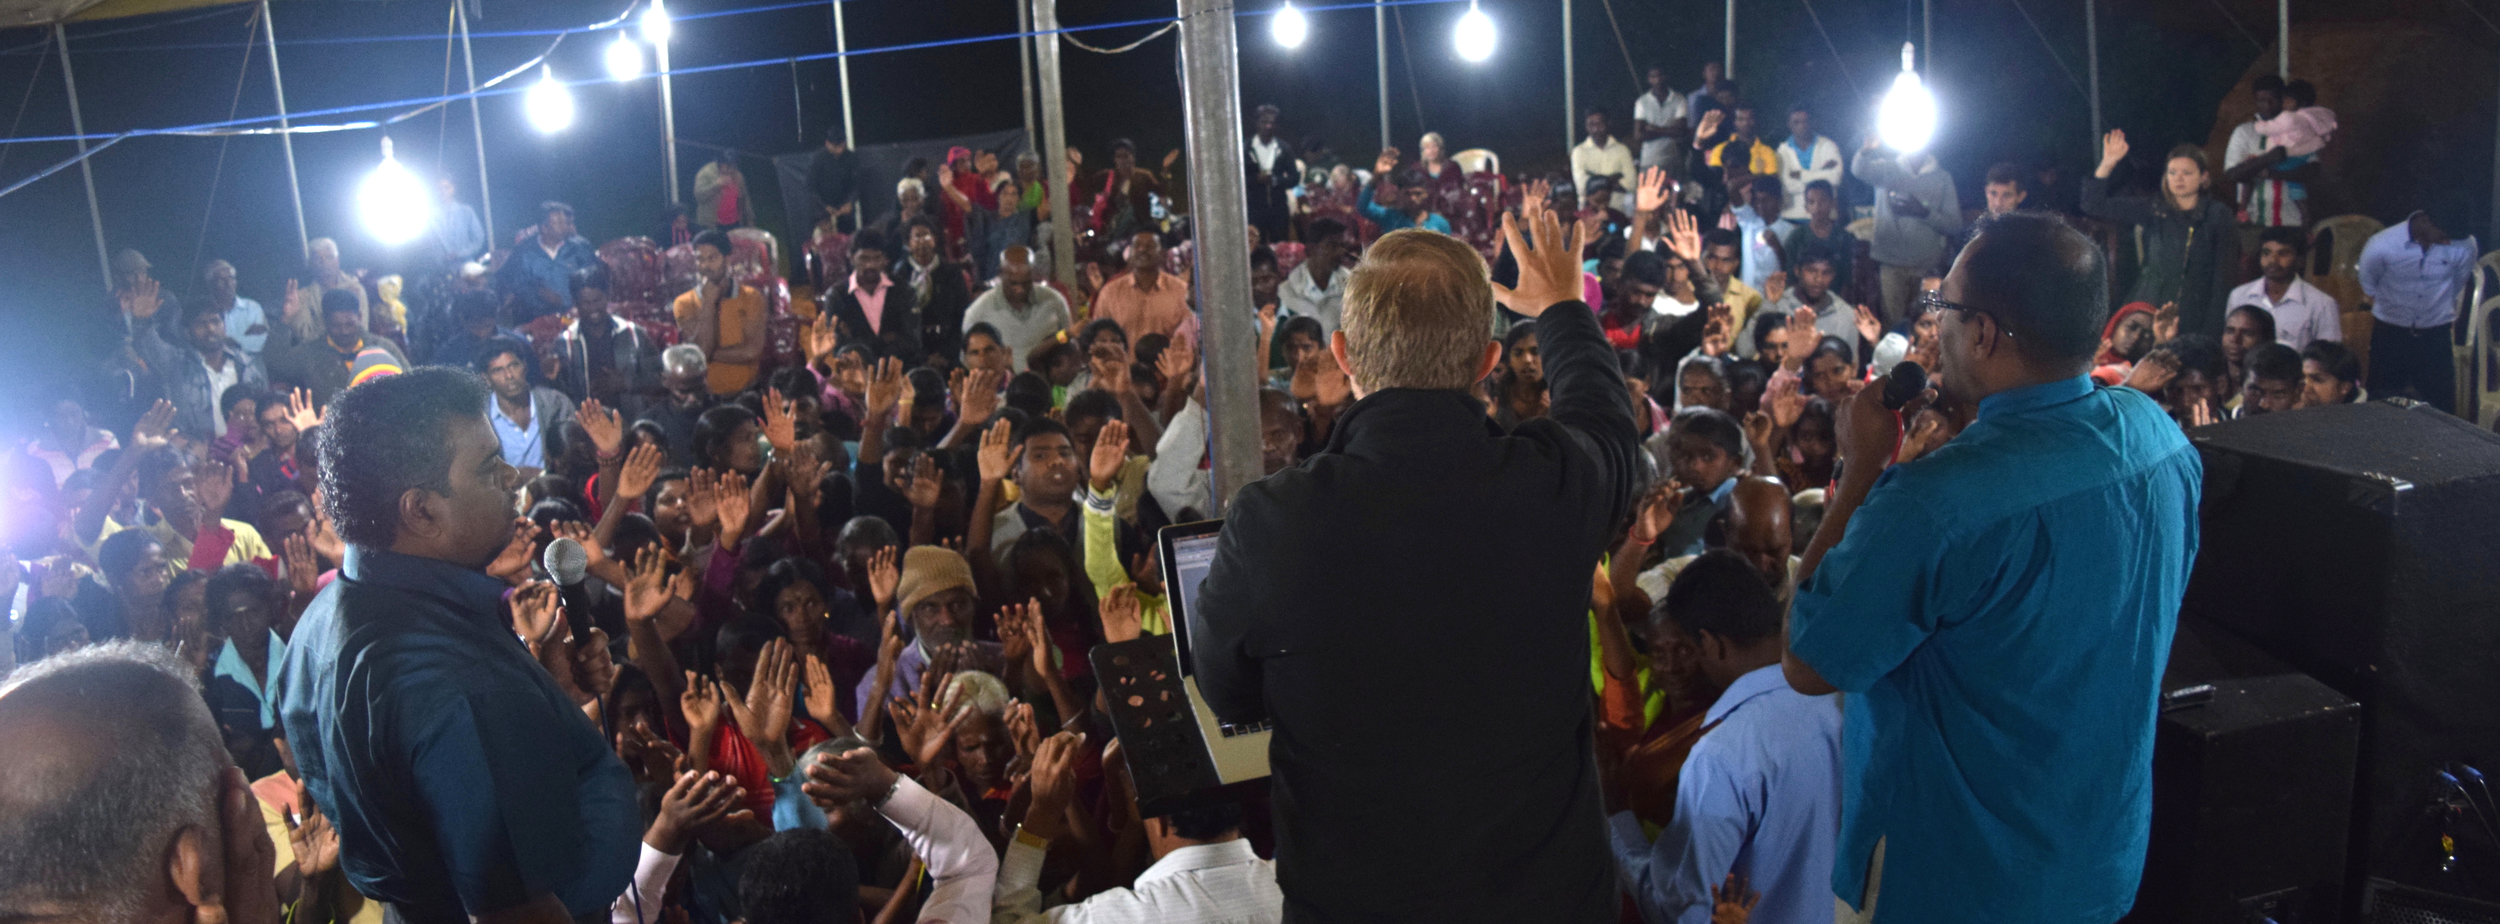 Praying for the sick at the crusade